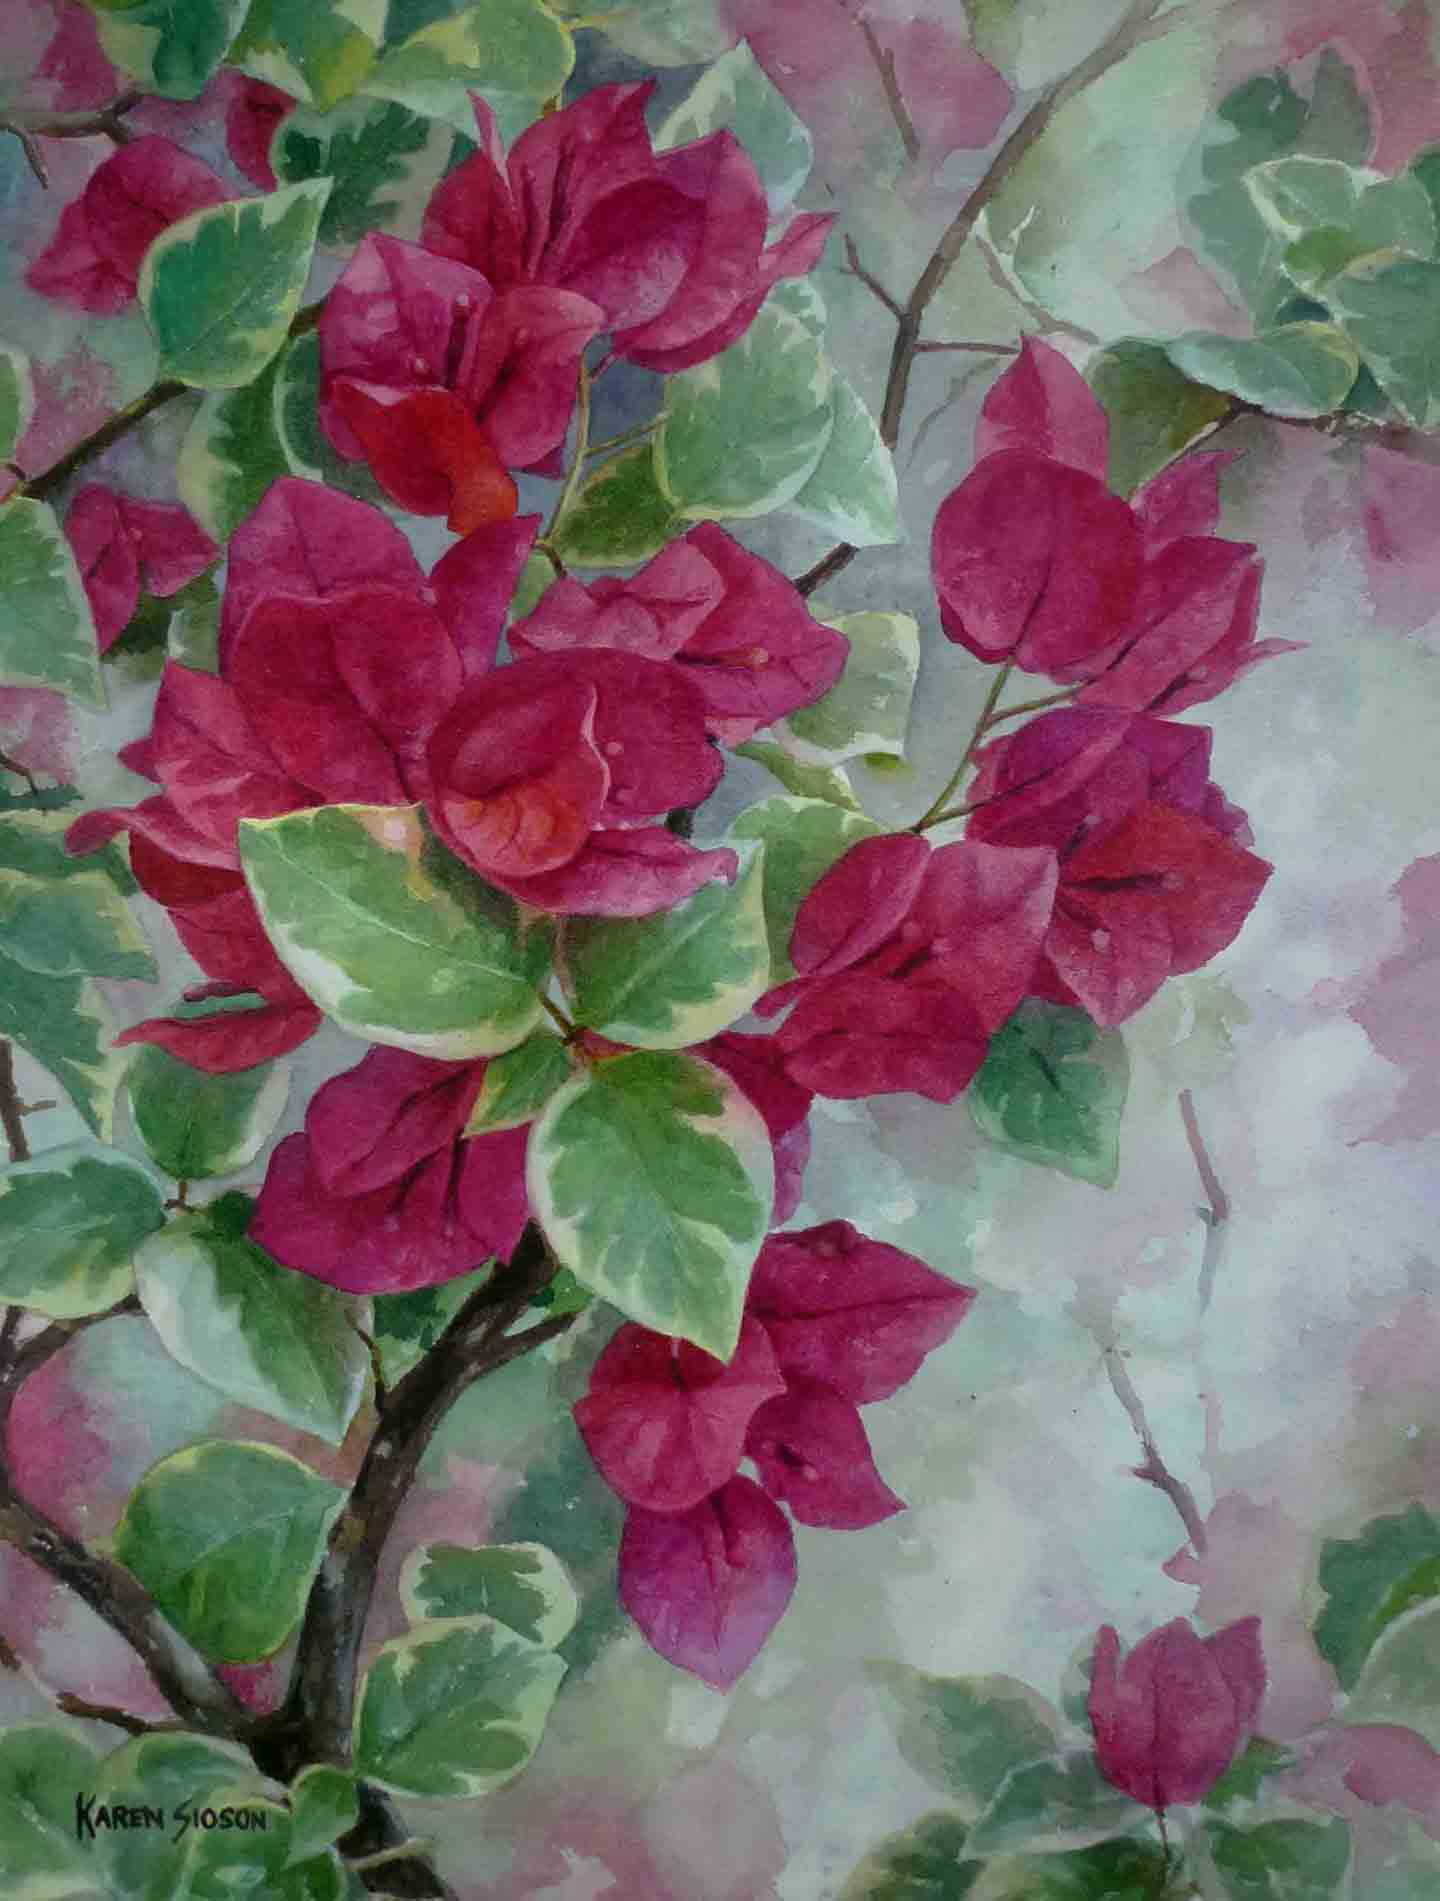 Rhapsody in Red, 15.75 x 11.75 inches